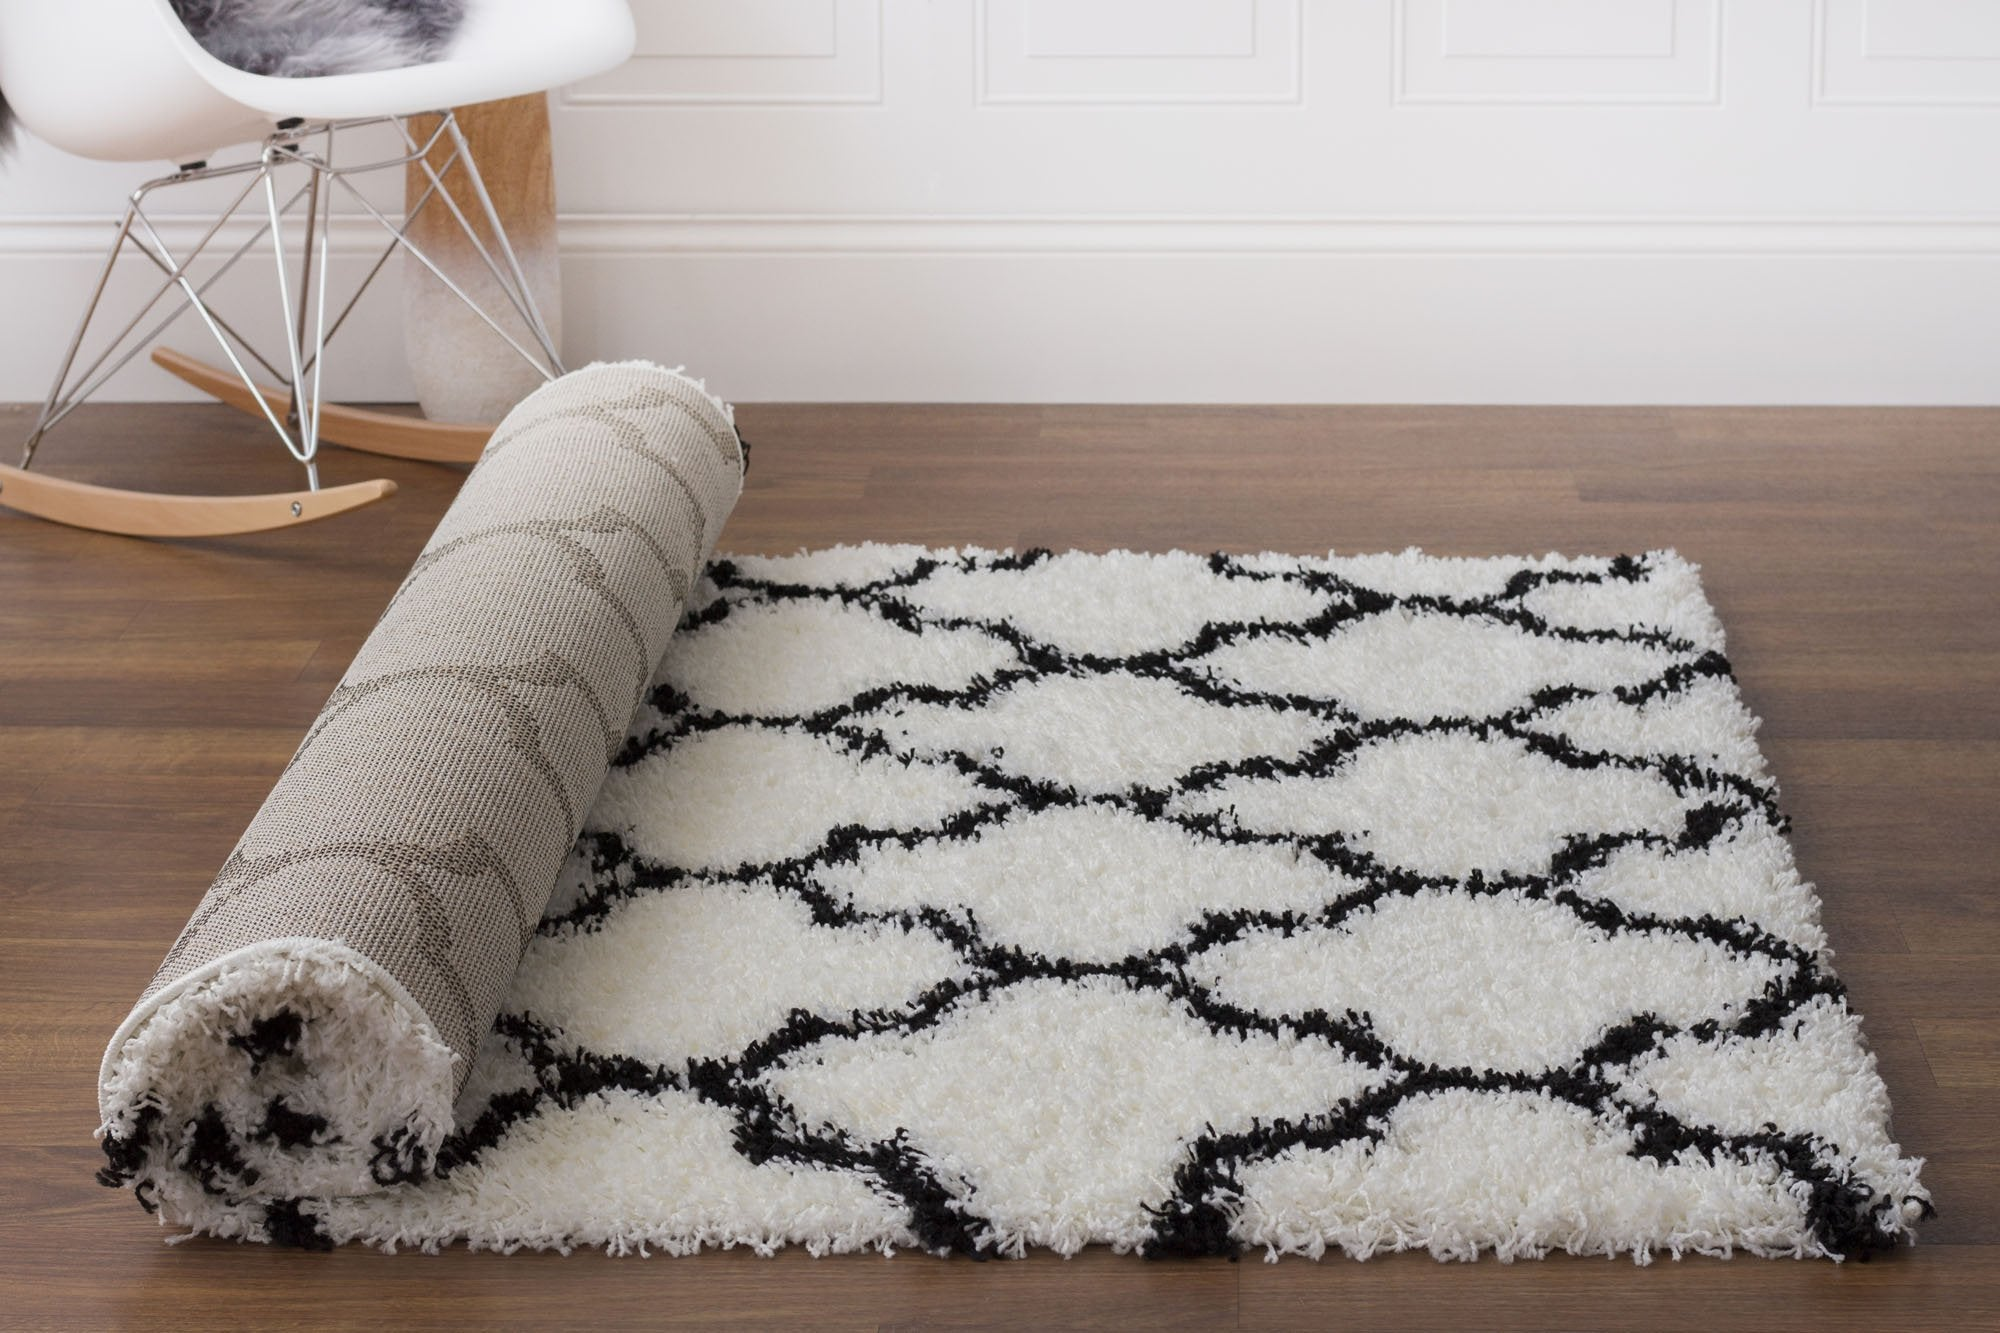 Super Area Rugs Moroccan Trellis Cozy Large Shag Rug for Home Decor 8X10, White & Black